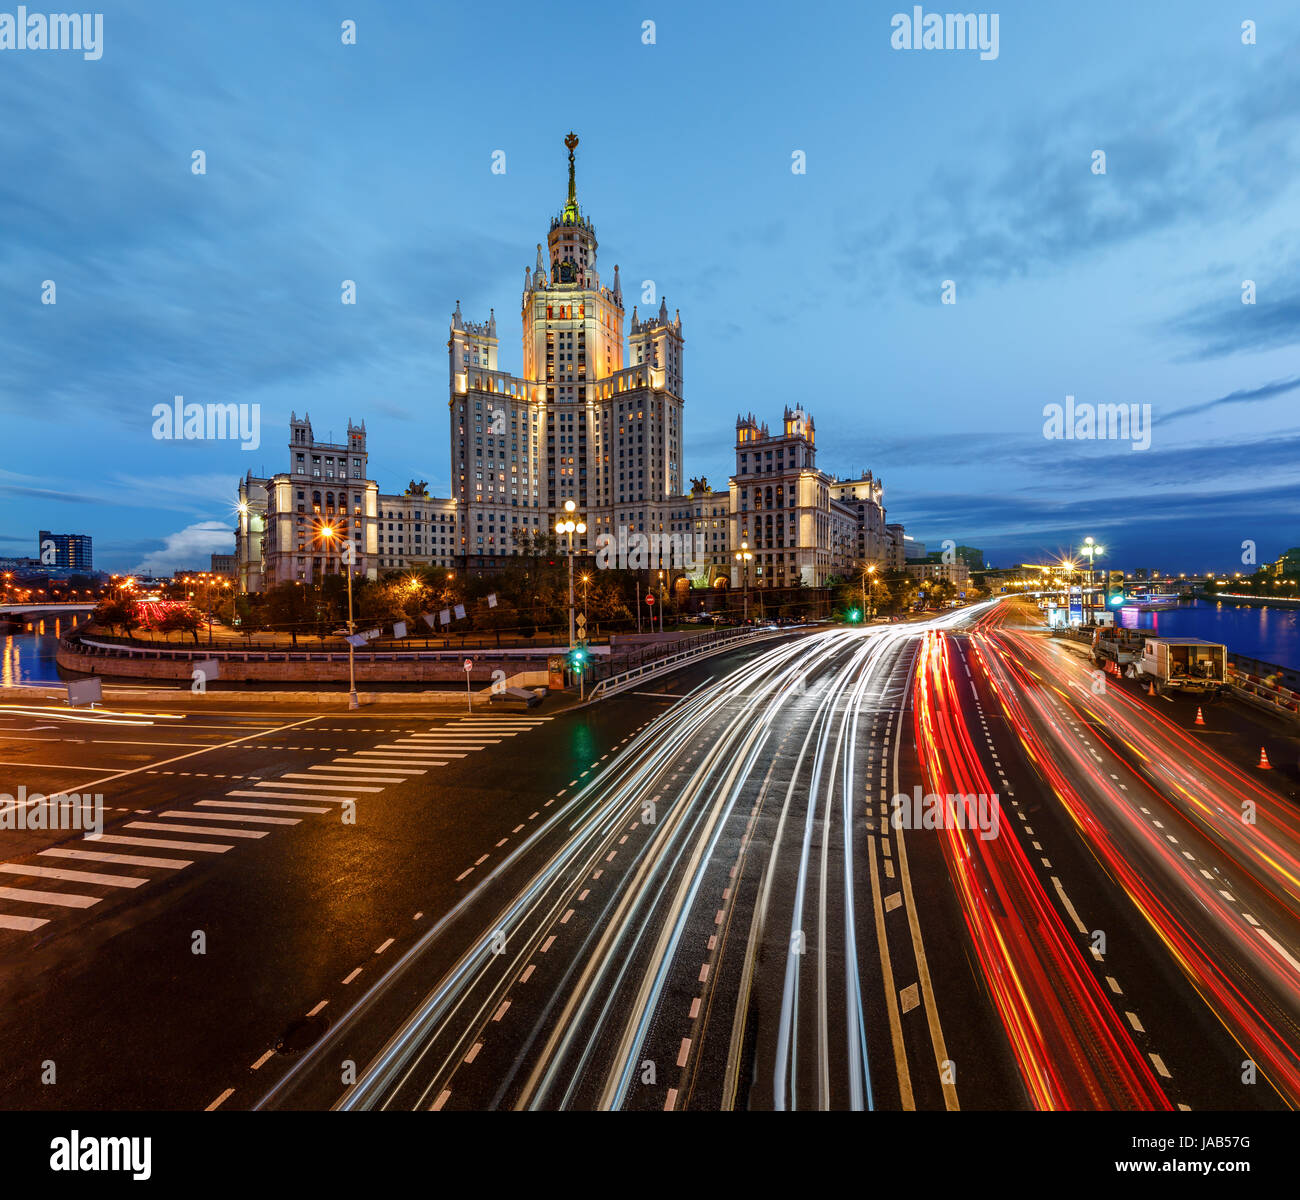 blue, house, building, tower, travel, historical, city, town, culture, traffic, Stock Photo